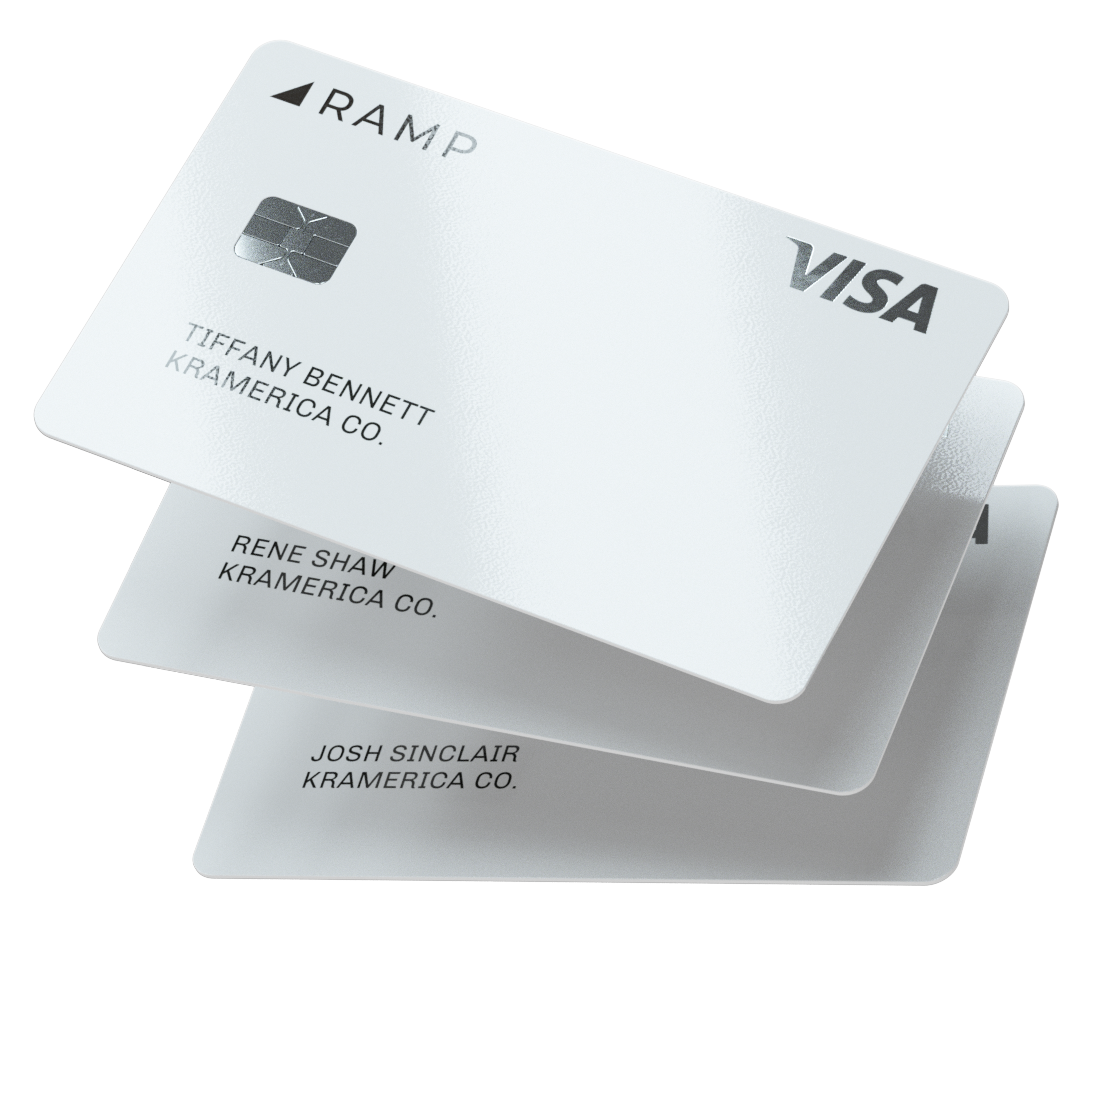 Ramp is a corporate card focused on helping you spend less...